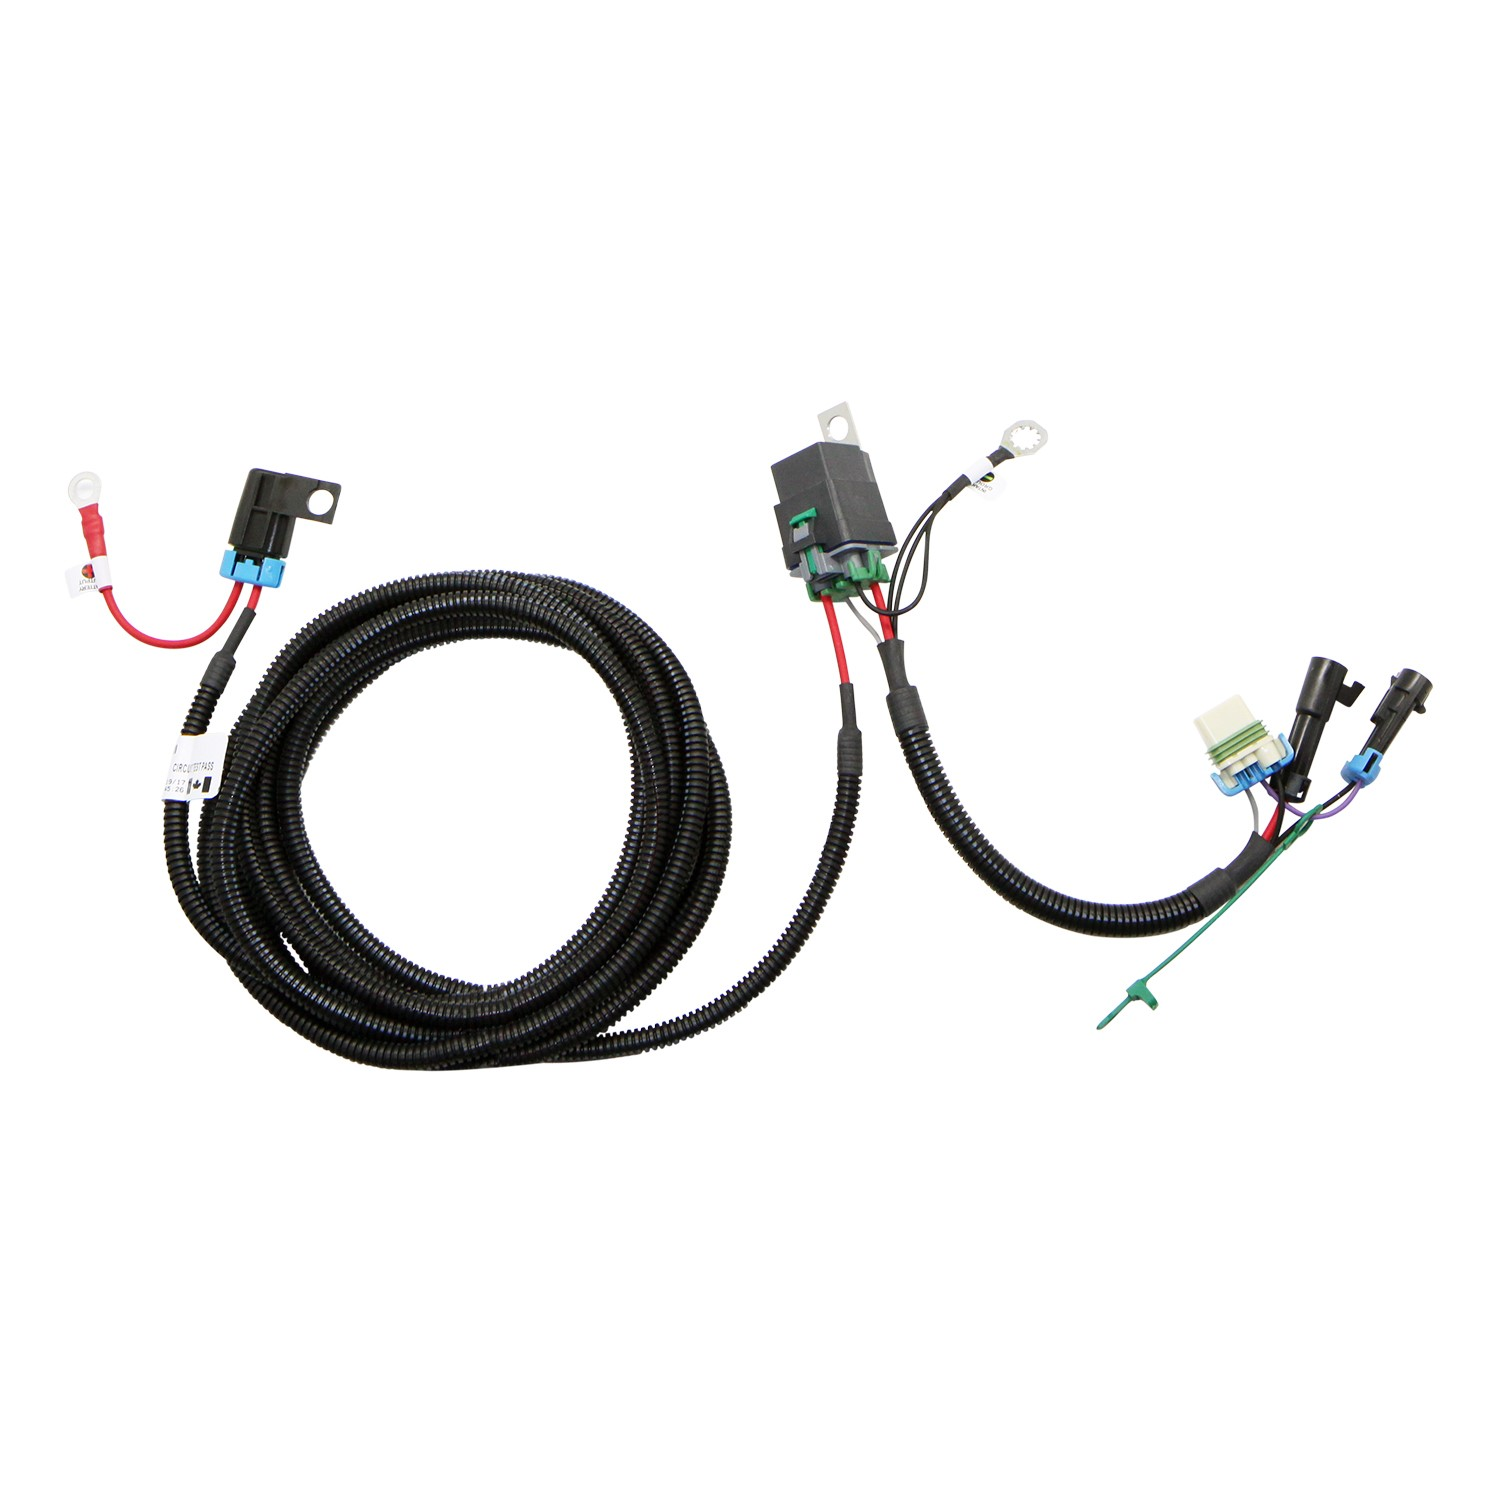 flt1 fuel pump wiring harness  fpwh